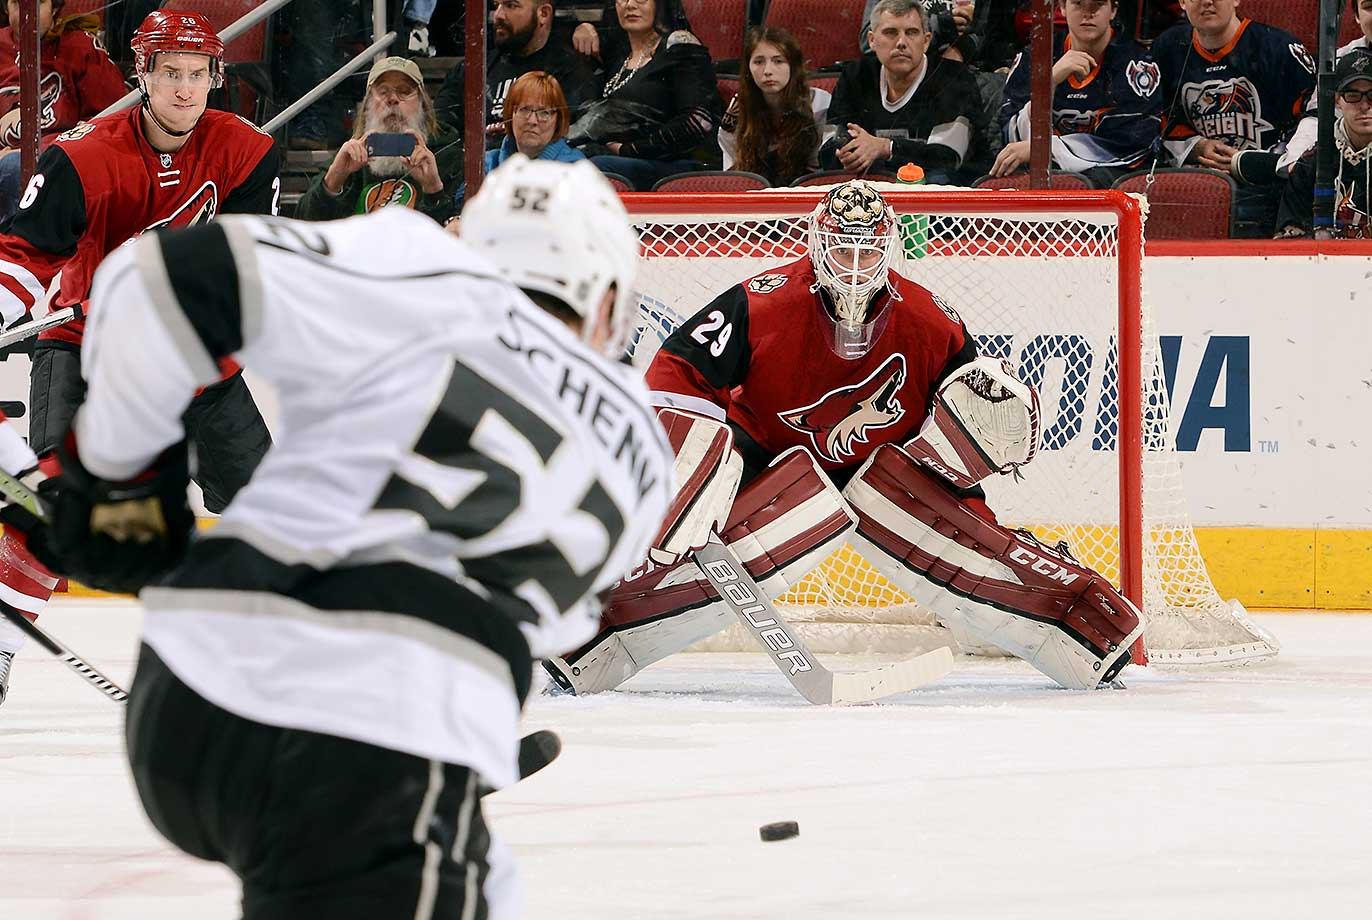 Goalie Anders Lindback of the Arizona Coyotes looks to make a save on the shot by Luke Schenn of the Los Angeles Kings at Gila River Arena in Glendale, Ariz.